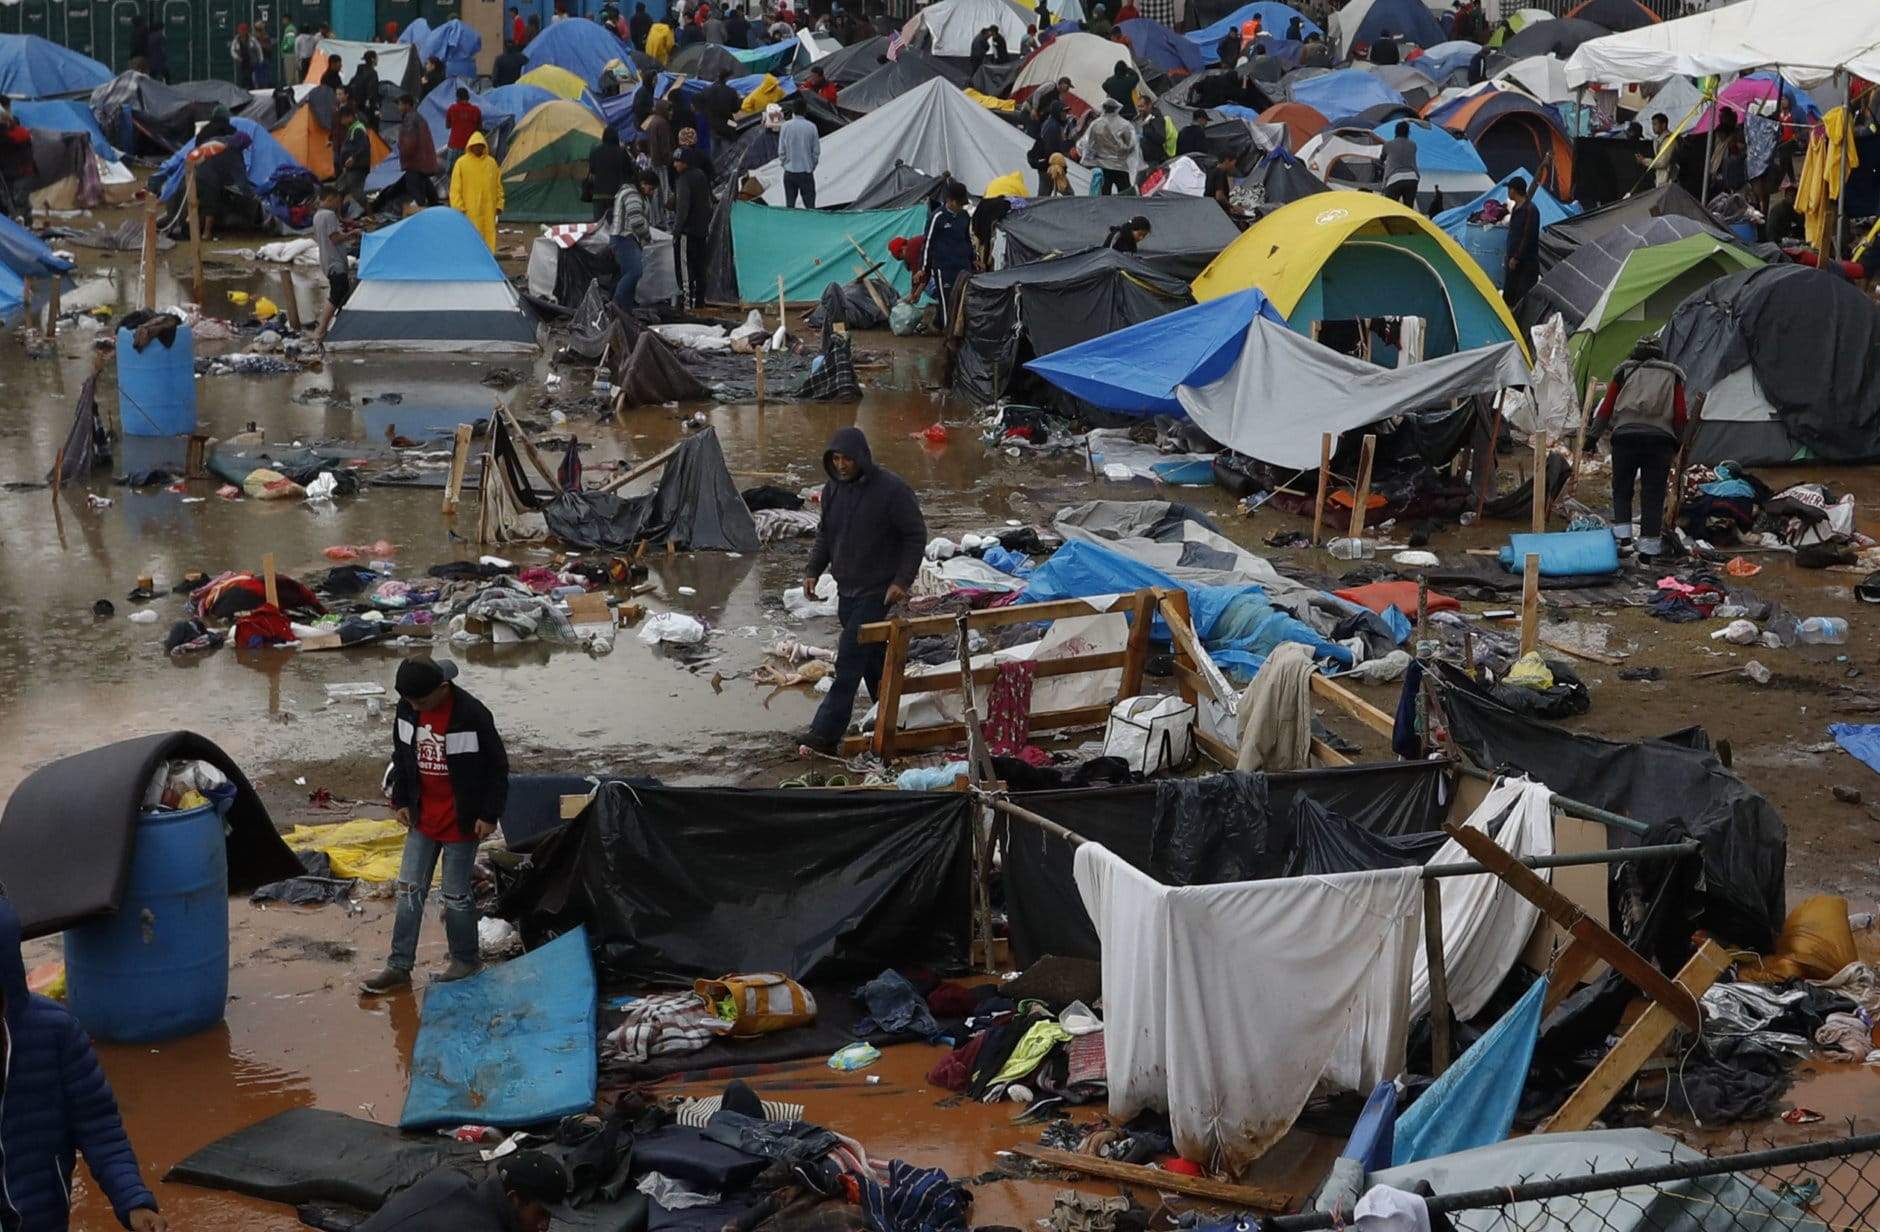 Migrants walk amidst flooded tents after heavy rains poured down on a sports complex sheltering thousands of Central Americans in Tijuana, Mexico, on Nov. 29, 2018. Aid workers and humanitarian organizations expressed concerns about the unsanitary conditions at the severely overcrowded facility, where lice infestations and respiratory infections are rampant. (AP Photo/Rebecca Blackwell)